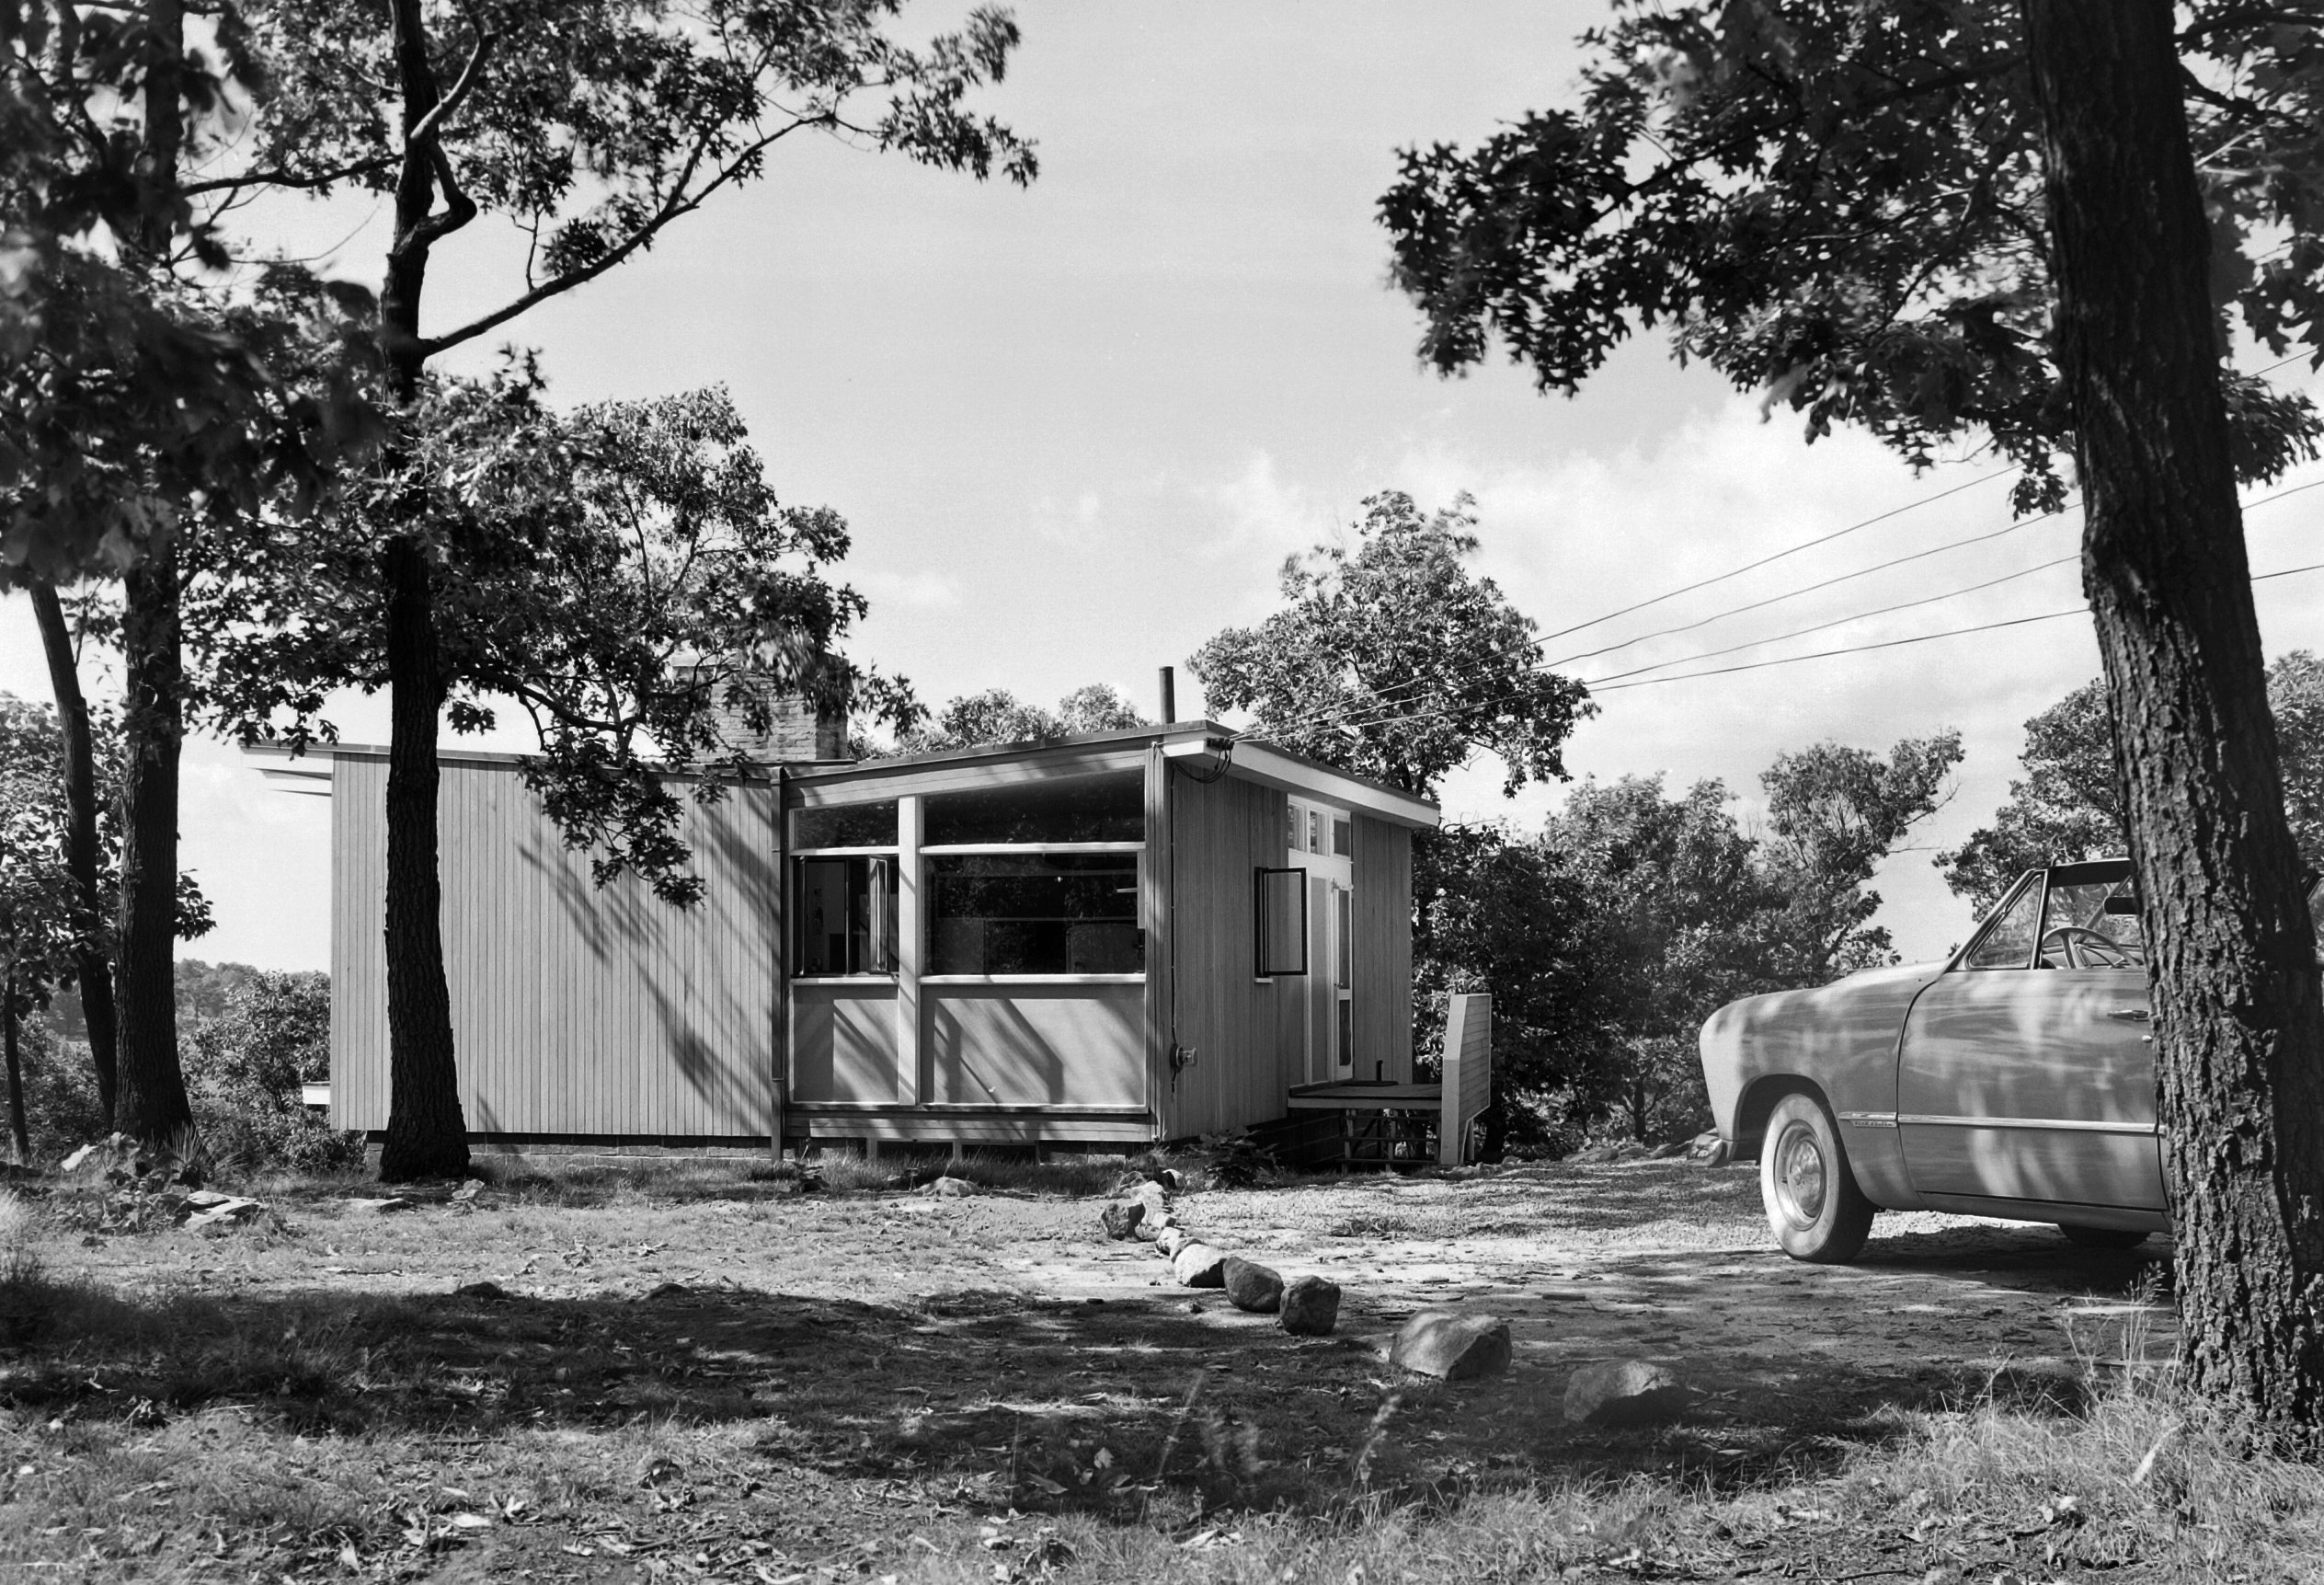 Black and white photo of a small house with a car in front